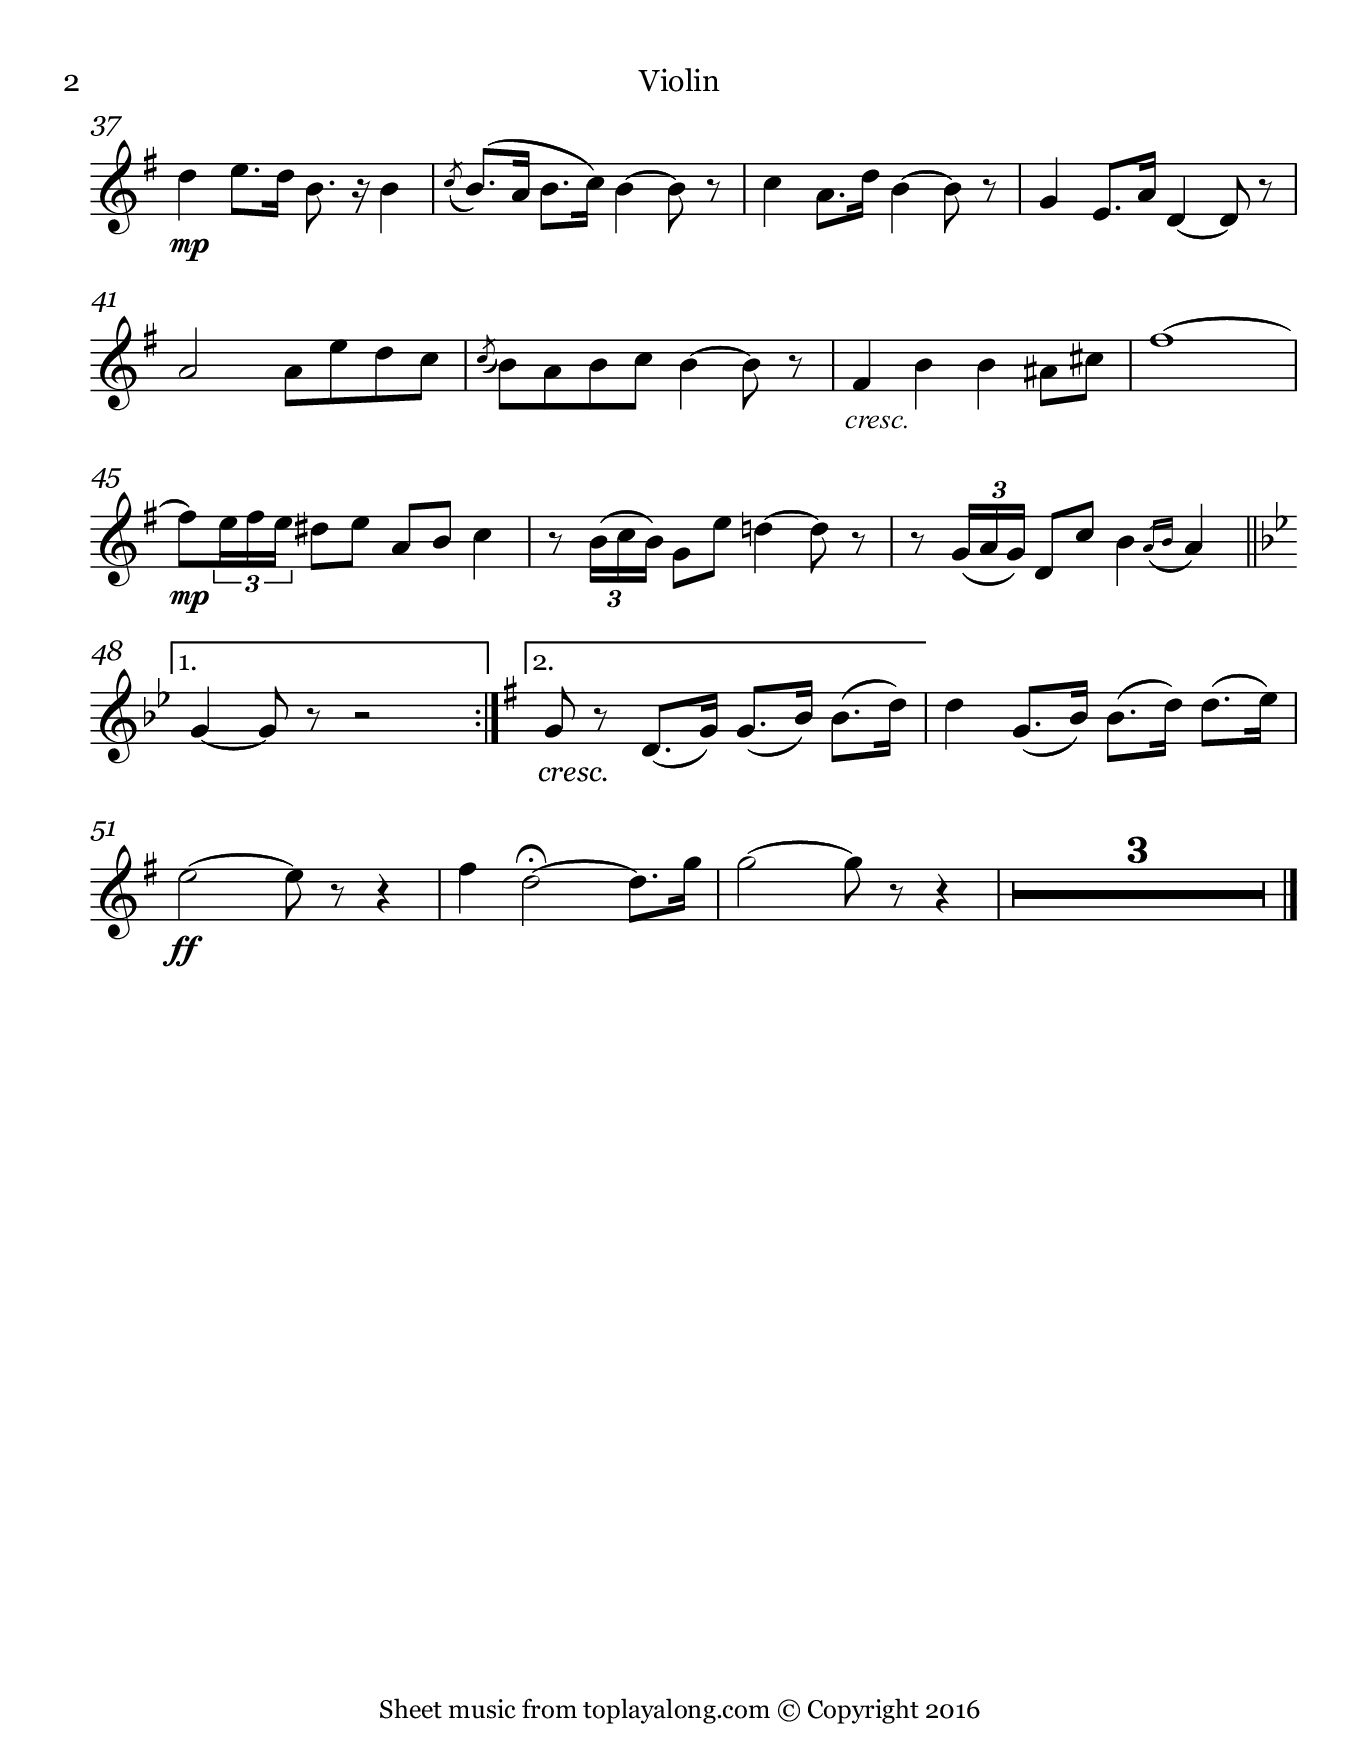 Toreador's Song from Carmen by Bizet. Sheet music for Violin, page 2.